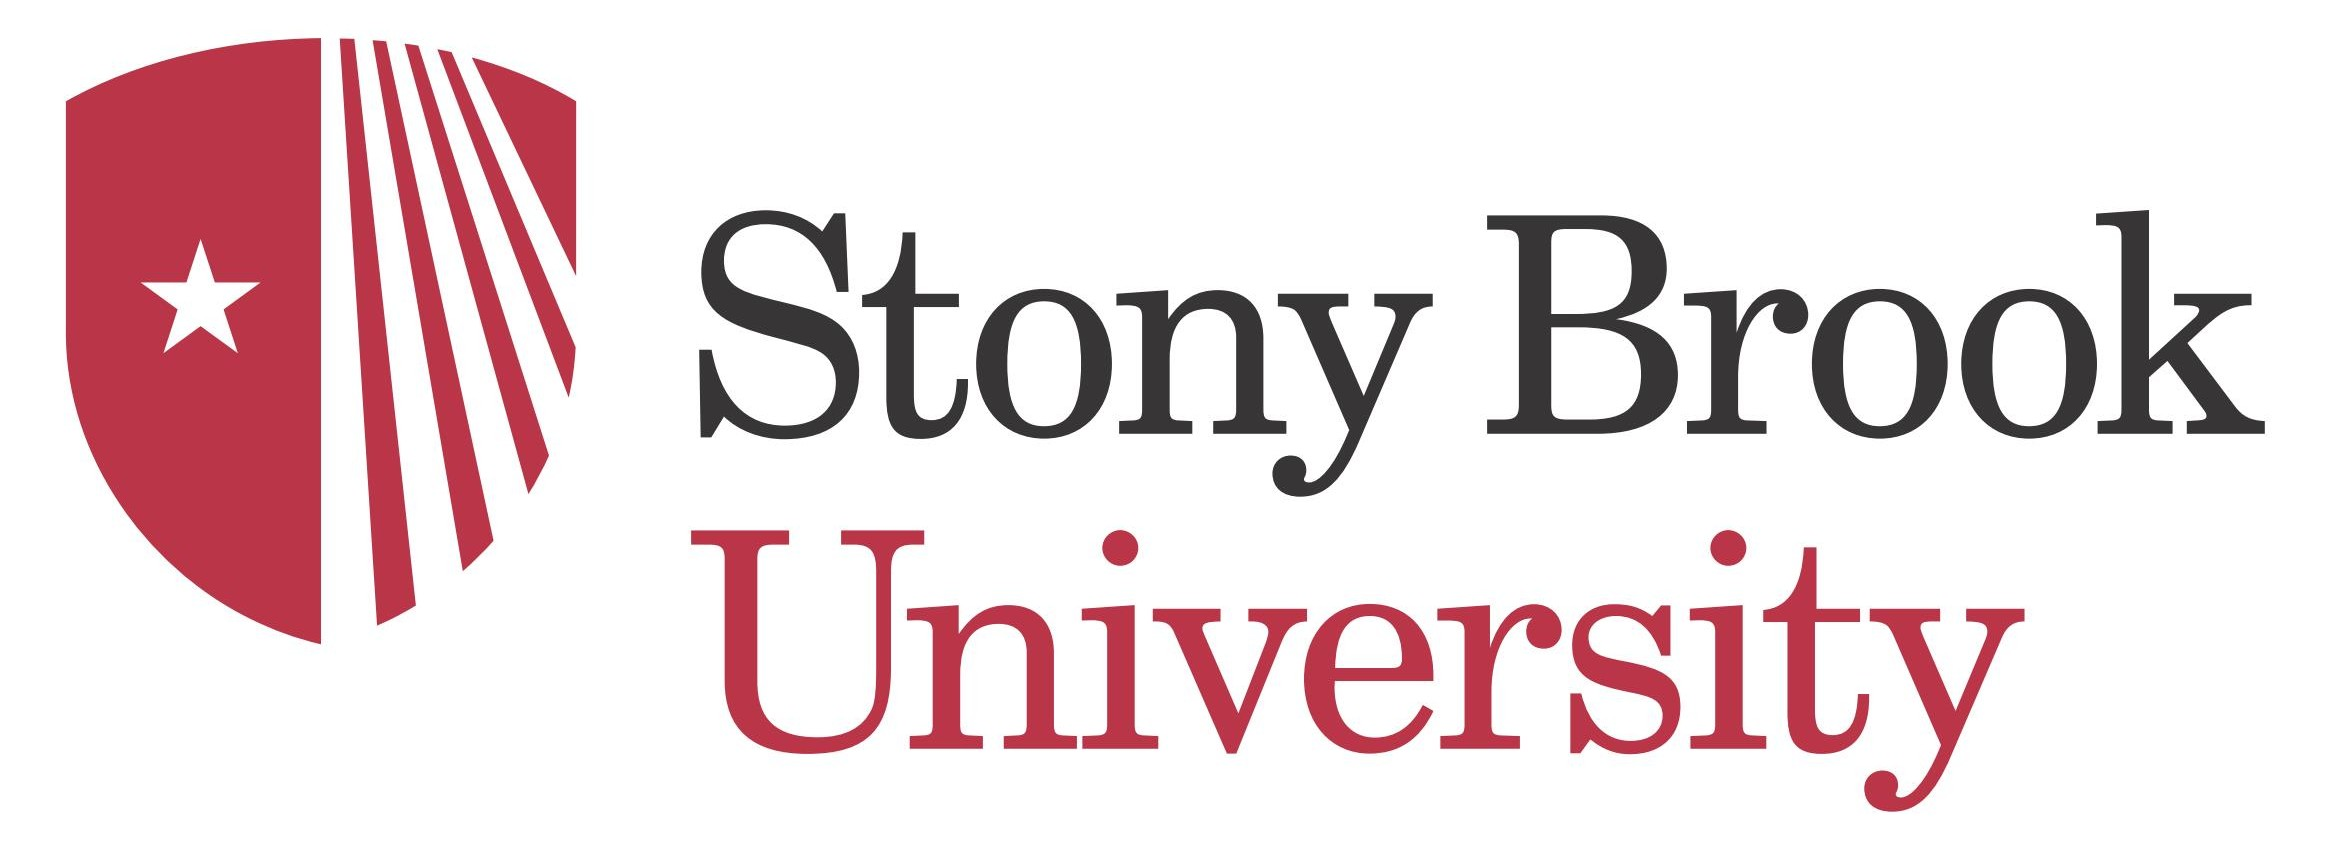 Stony brook nursing-2233